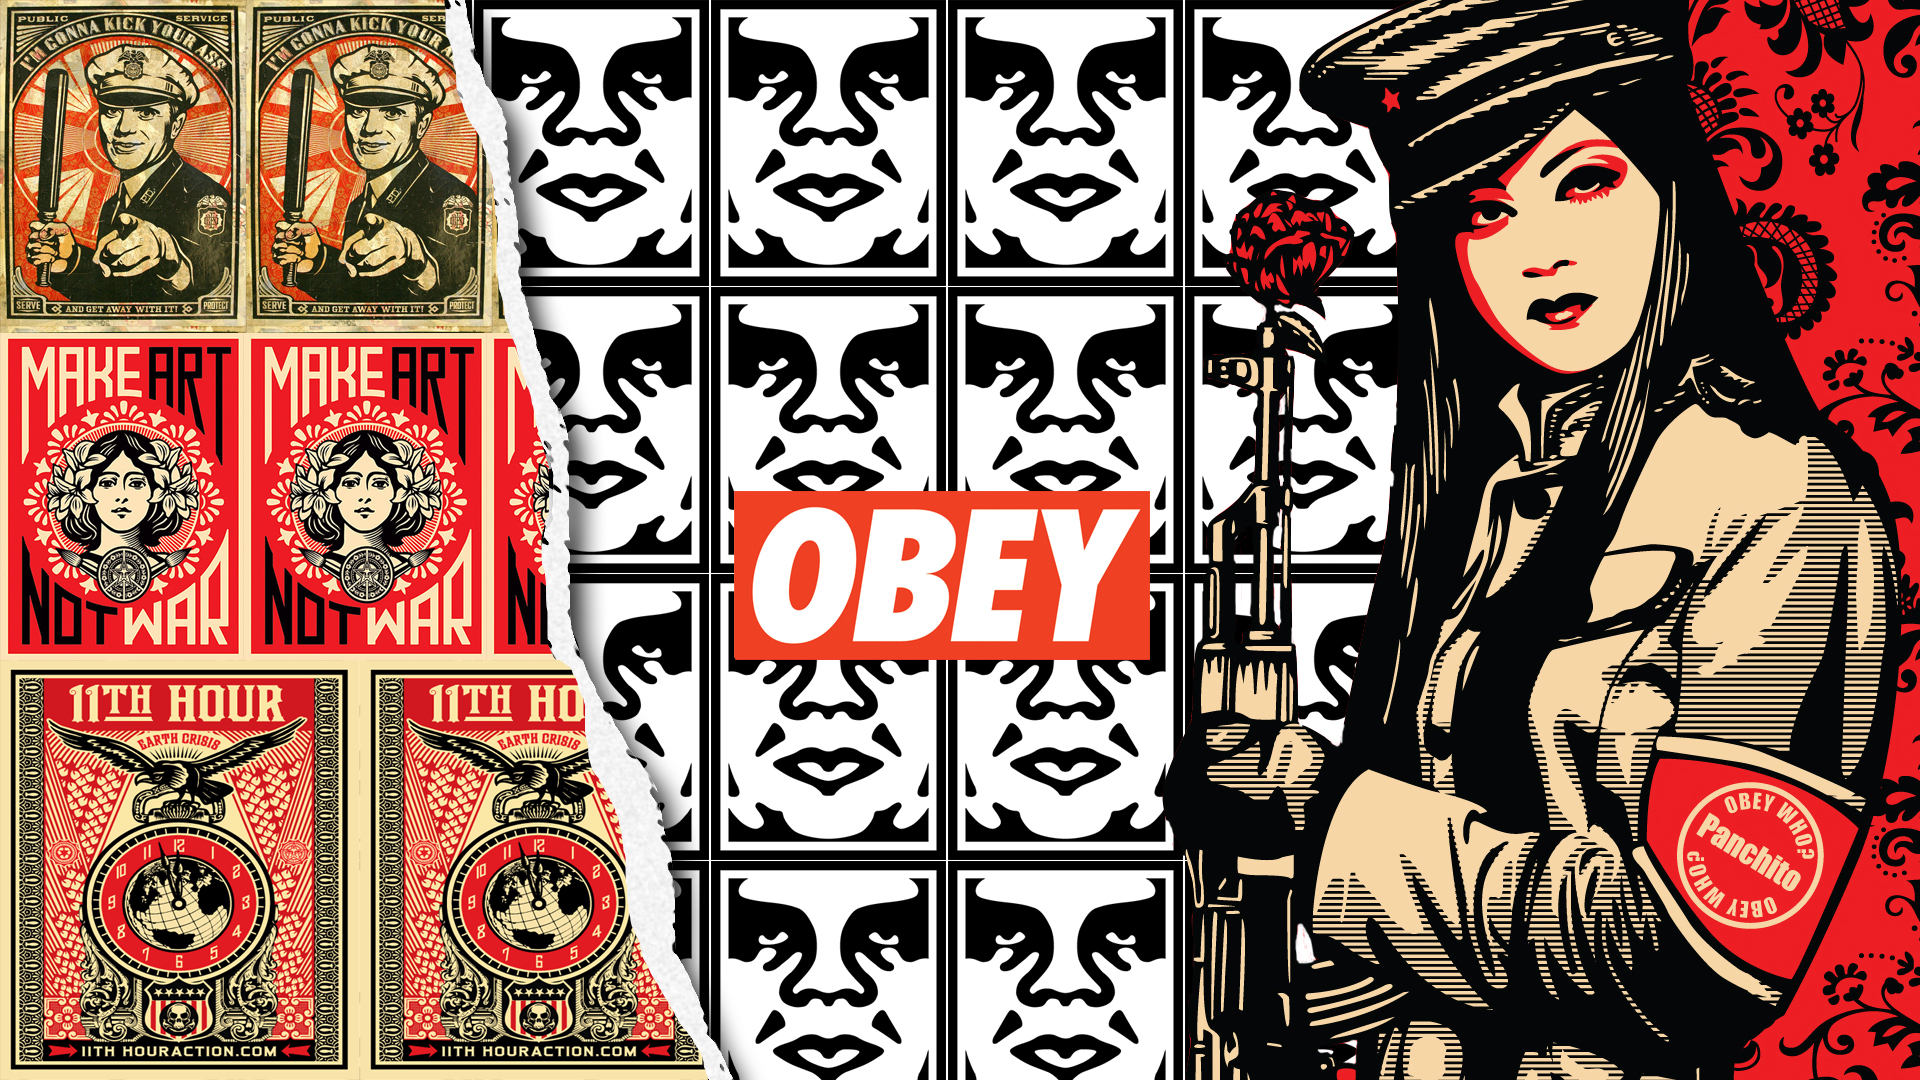 Obey Wallpaper 1920x1080 by JayGunnink 1920x1080